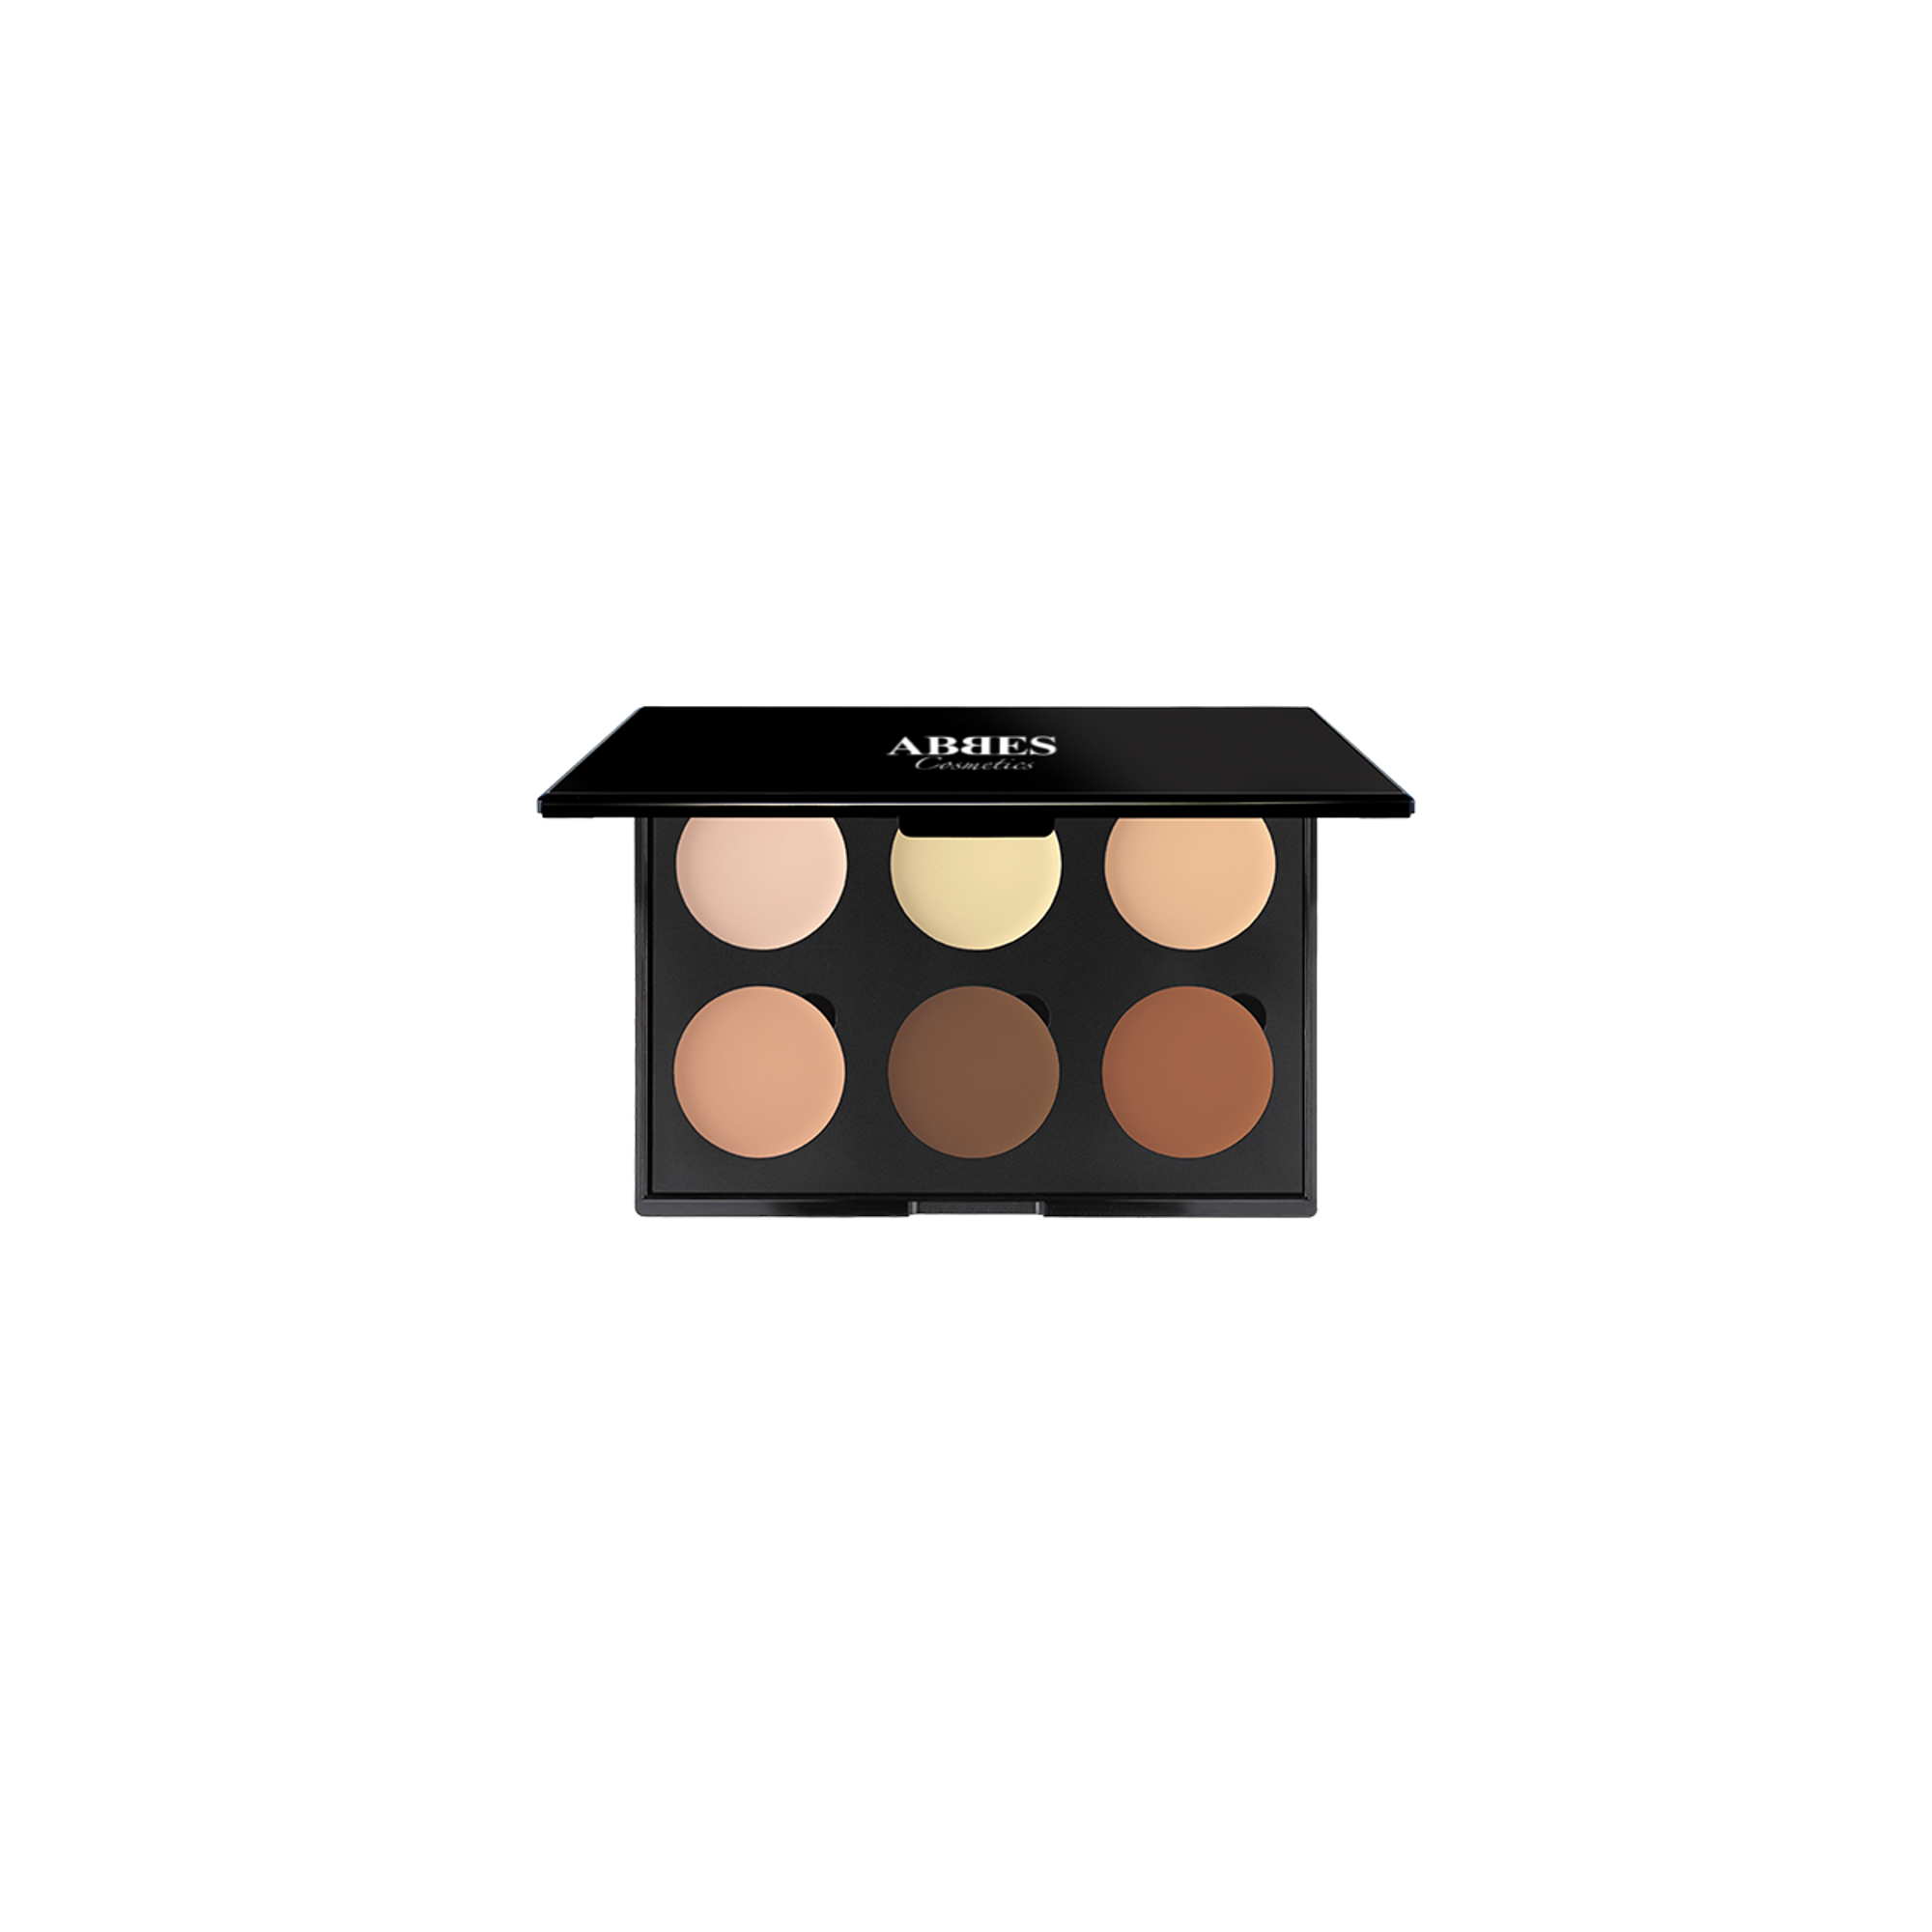 Abbes Cosmetics Contour Cream Palette Ivory